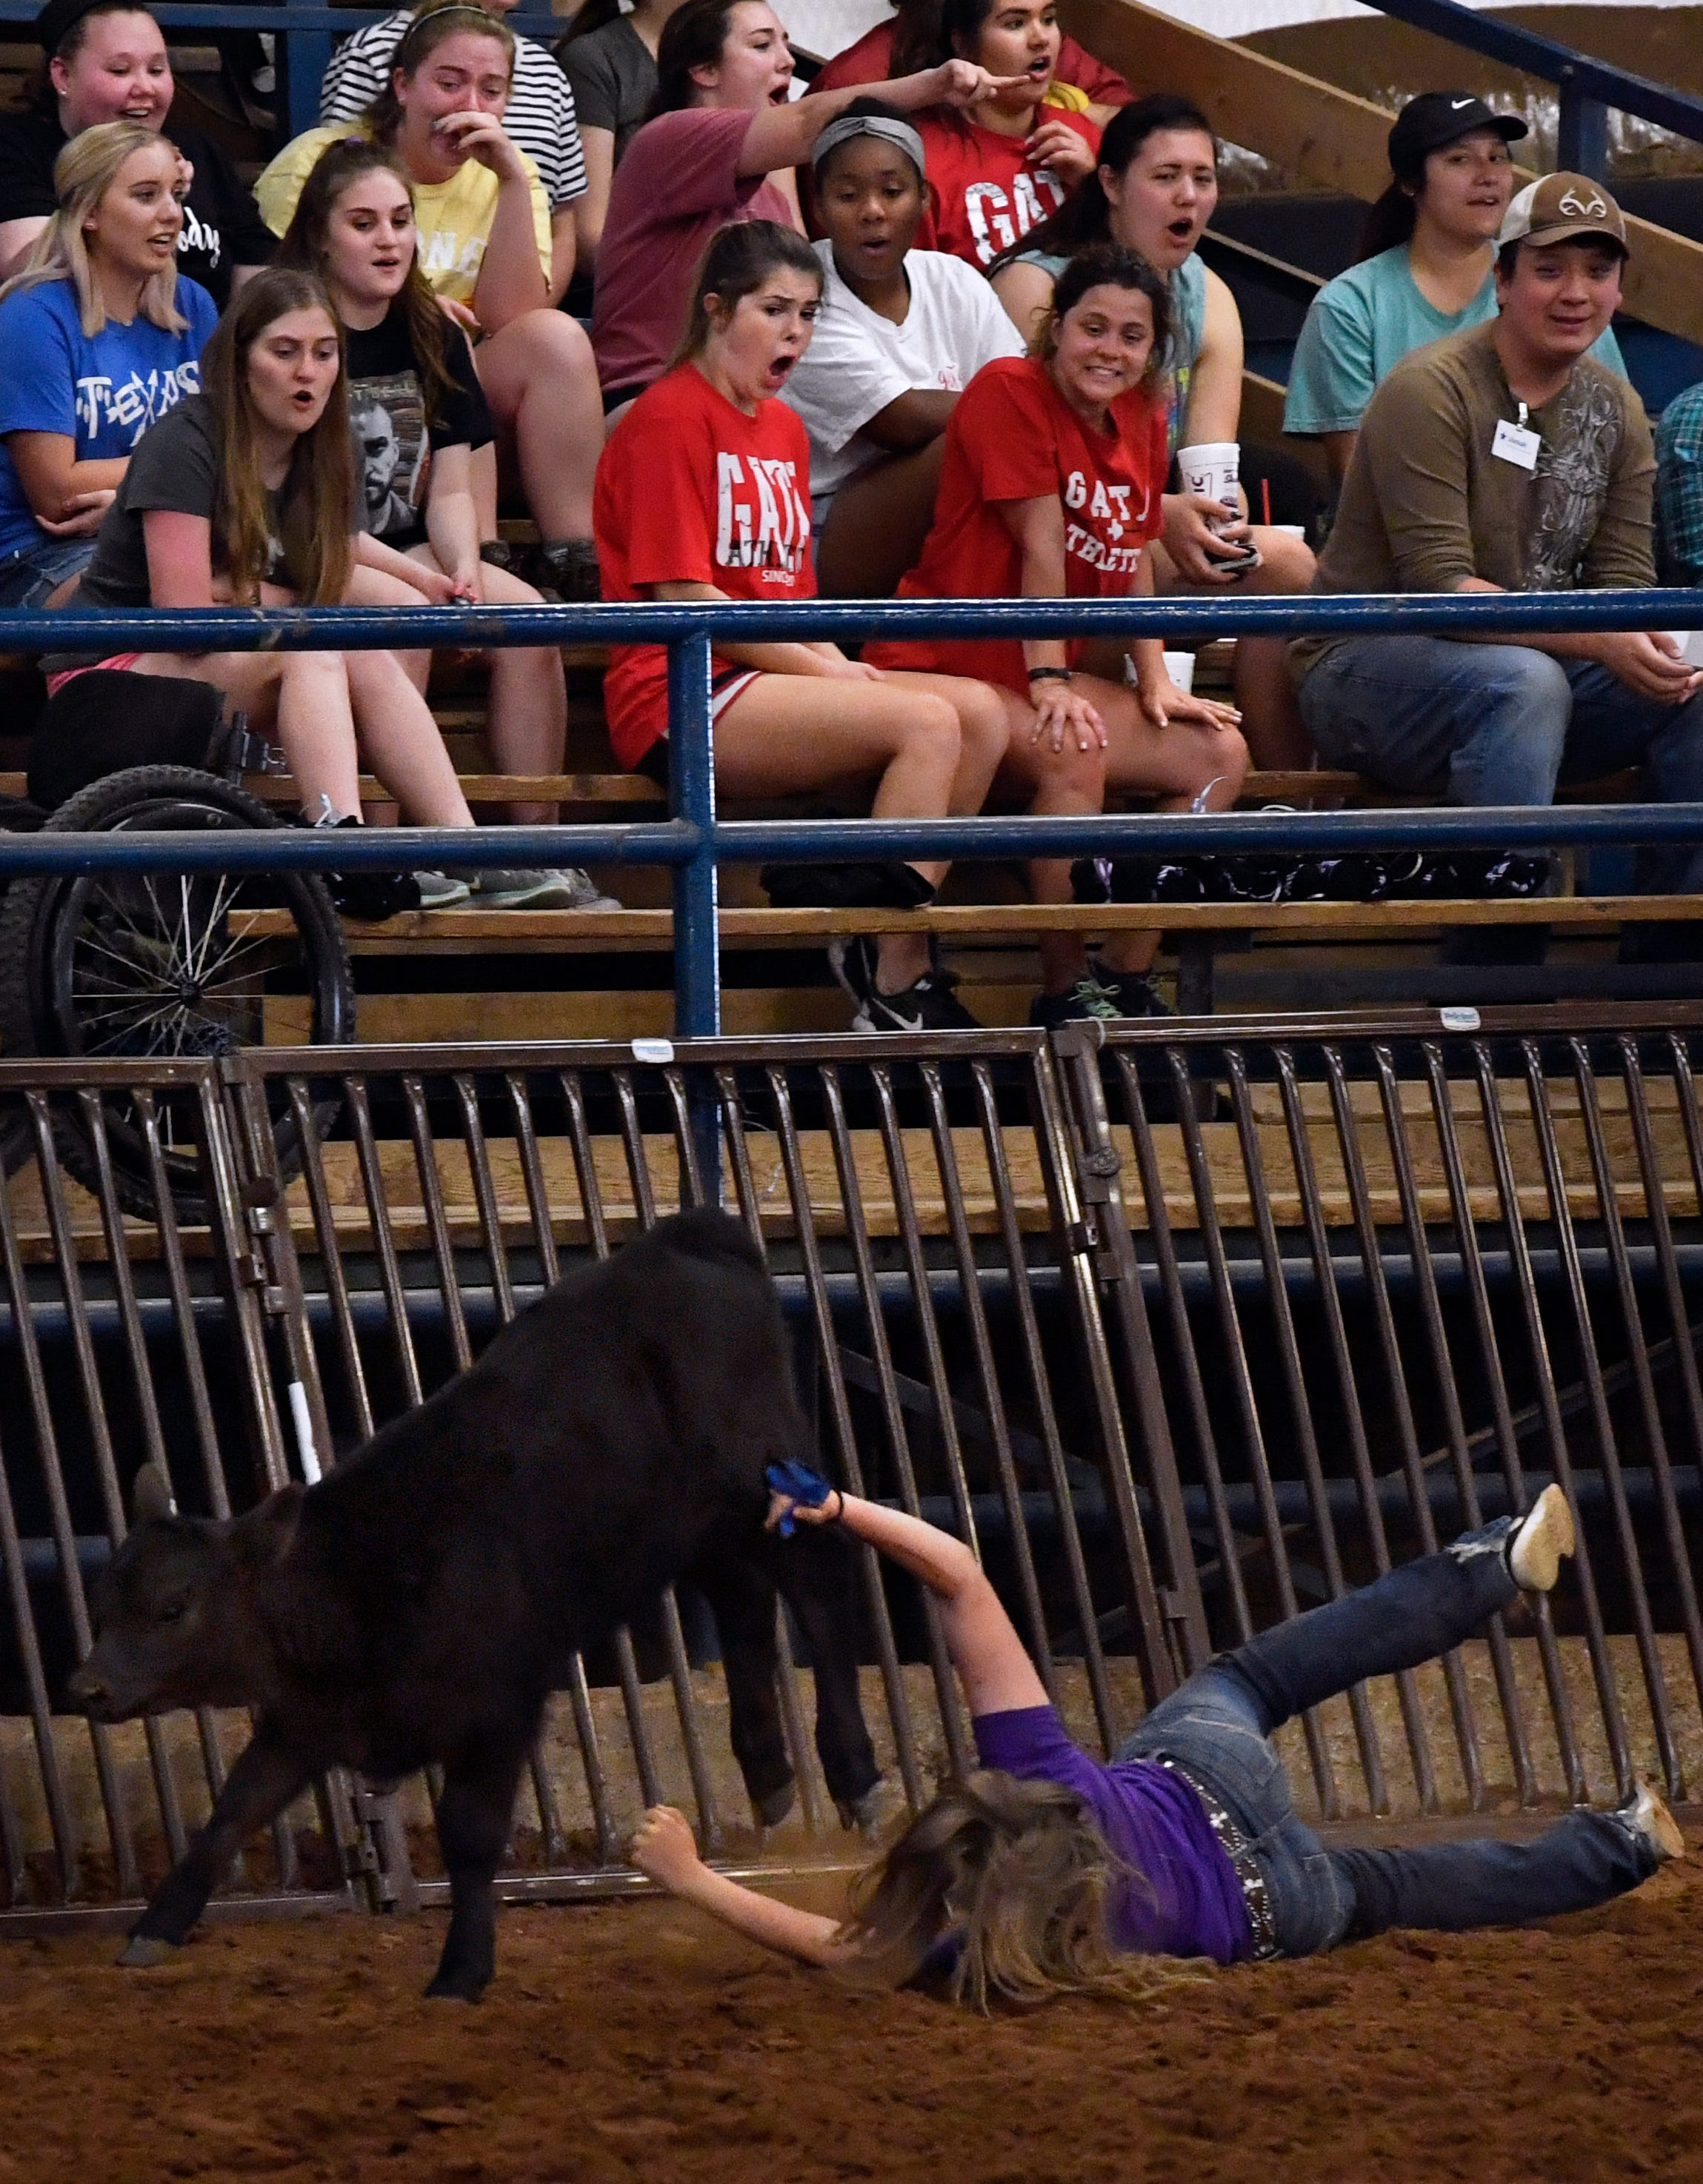 Audience members react as an ACU student loses her grip on a calf during the calf scramble Thursday at the ACU Intramural Rodeo.